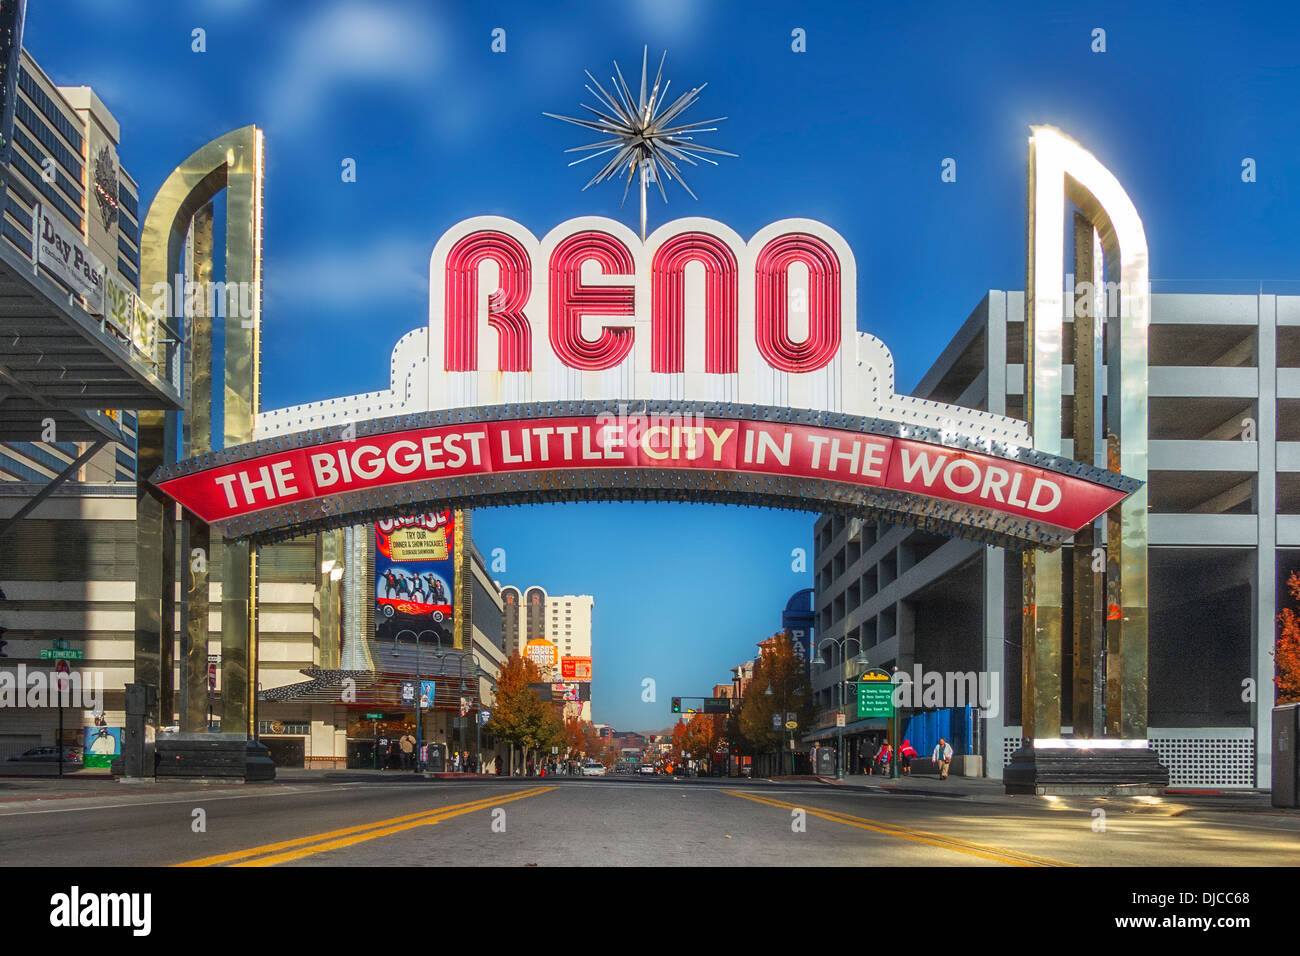 straight on view  of the RENO the biggest little city in the world an iconic sign in Reno Nevada - Stock Image